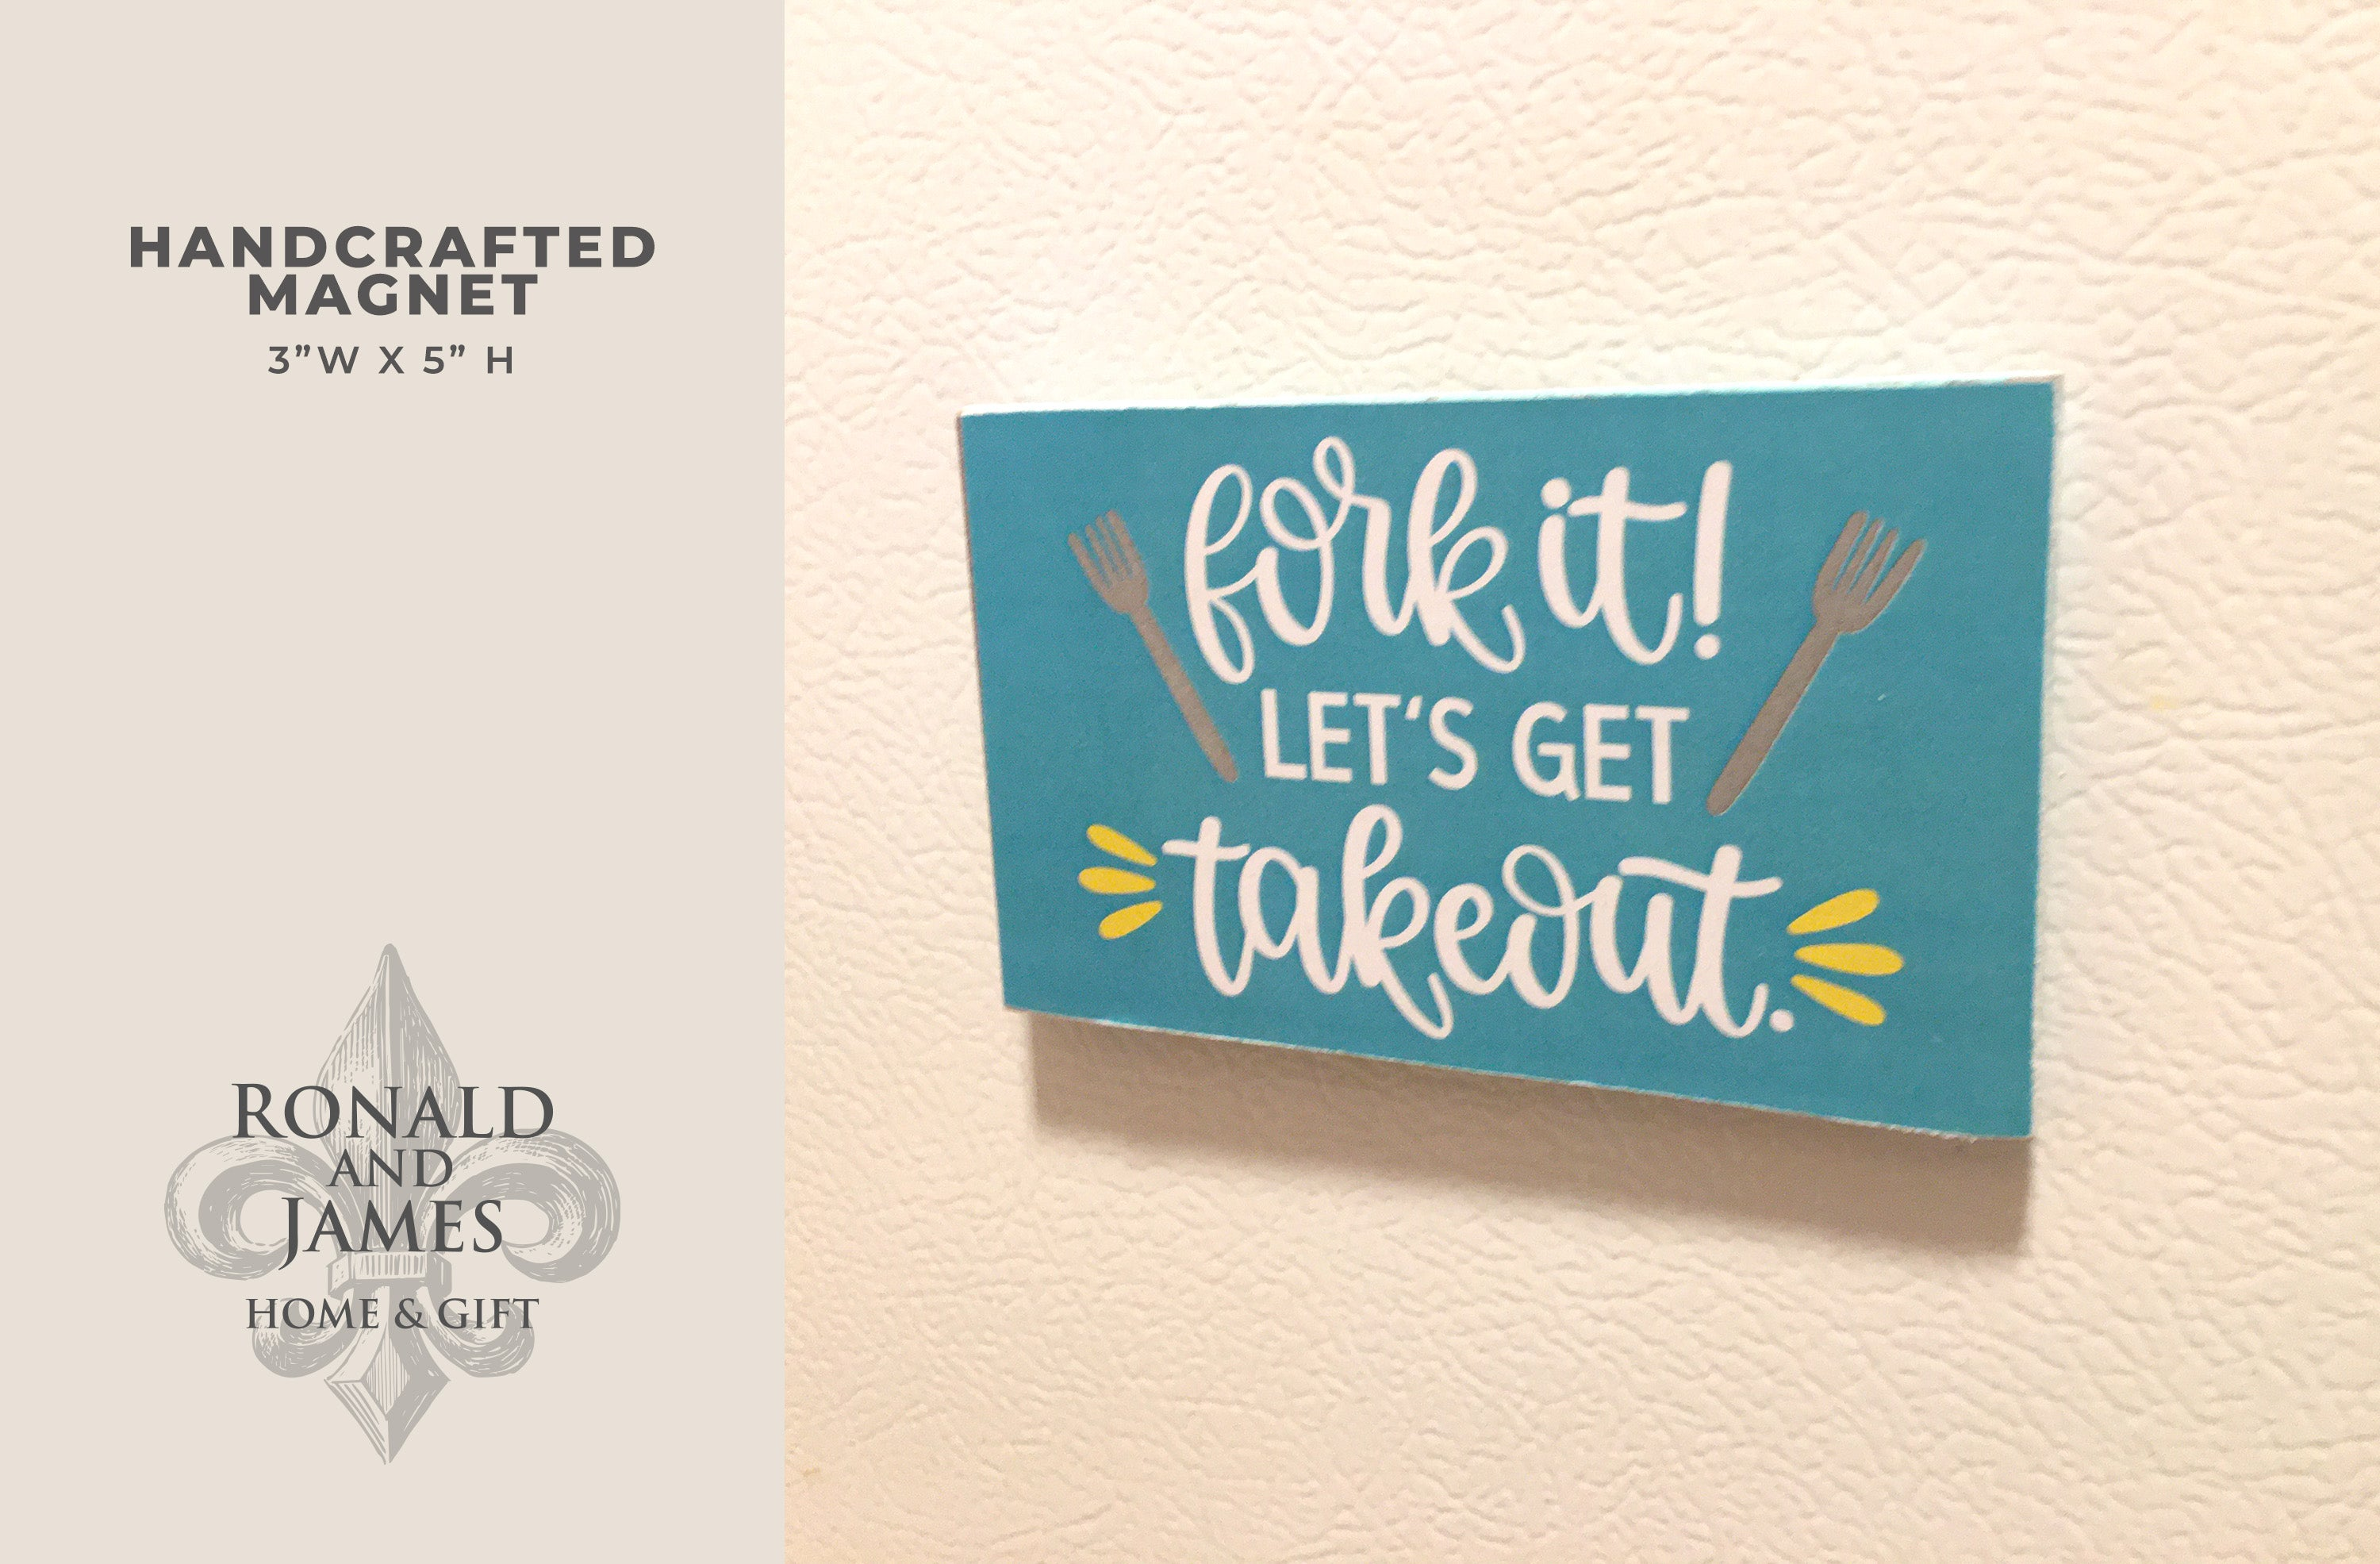 Handcrafted Magnet -Fork it! Let's get Takeout